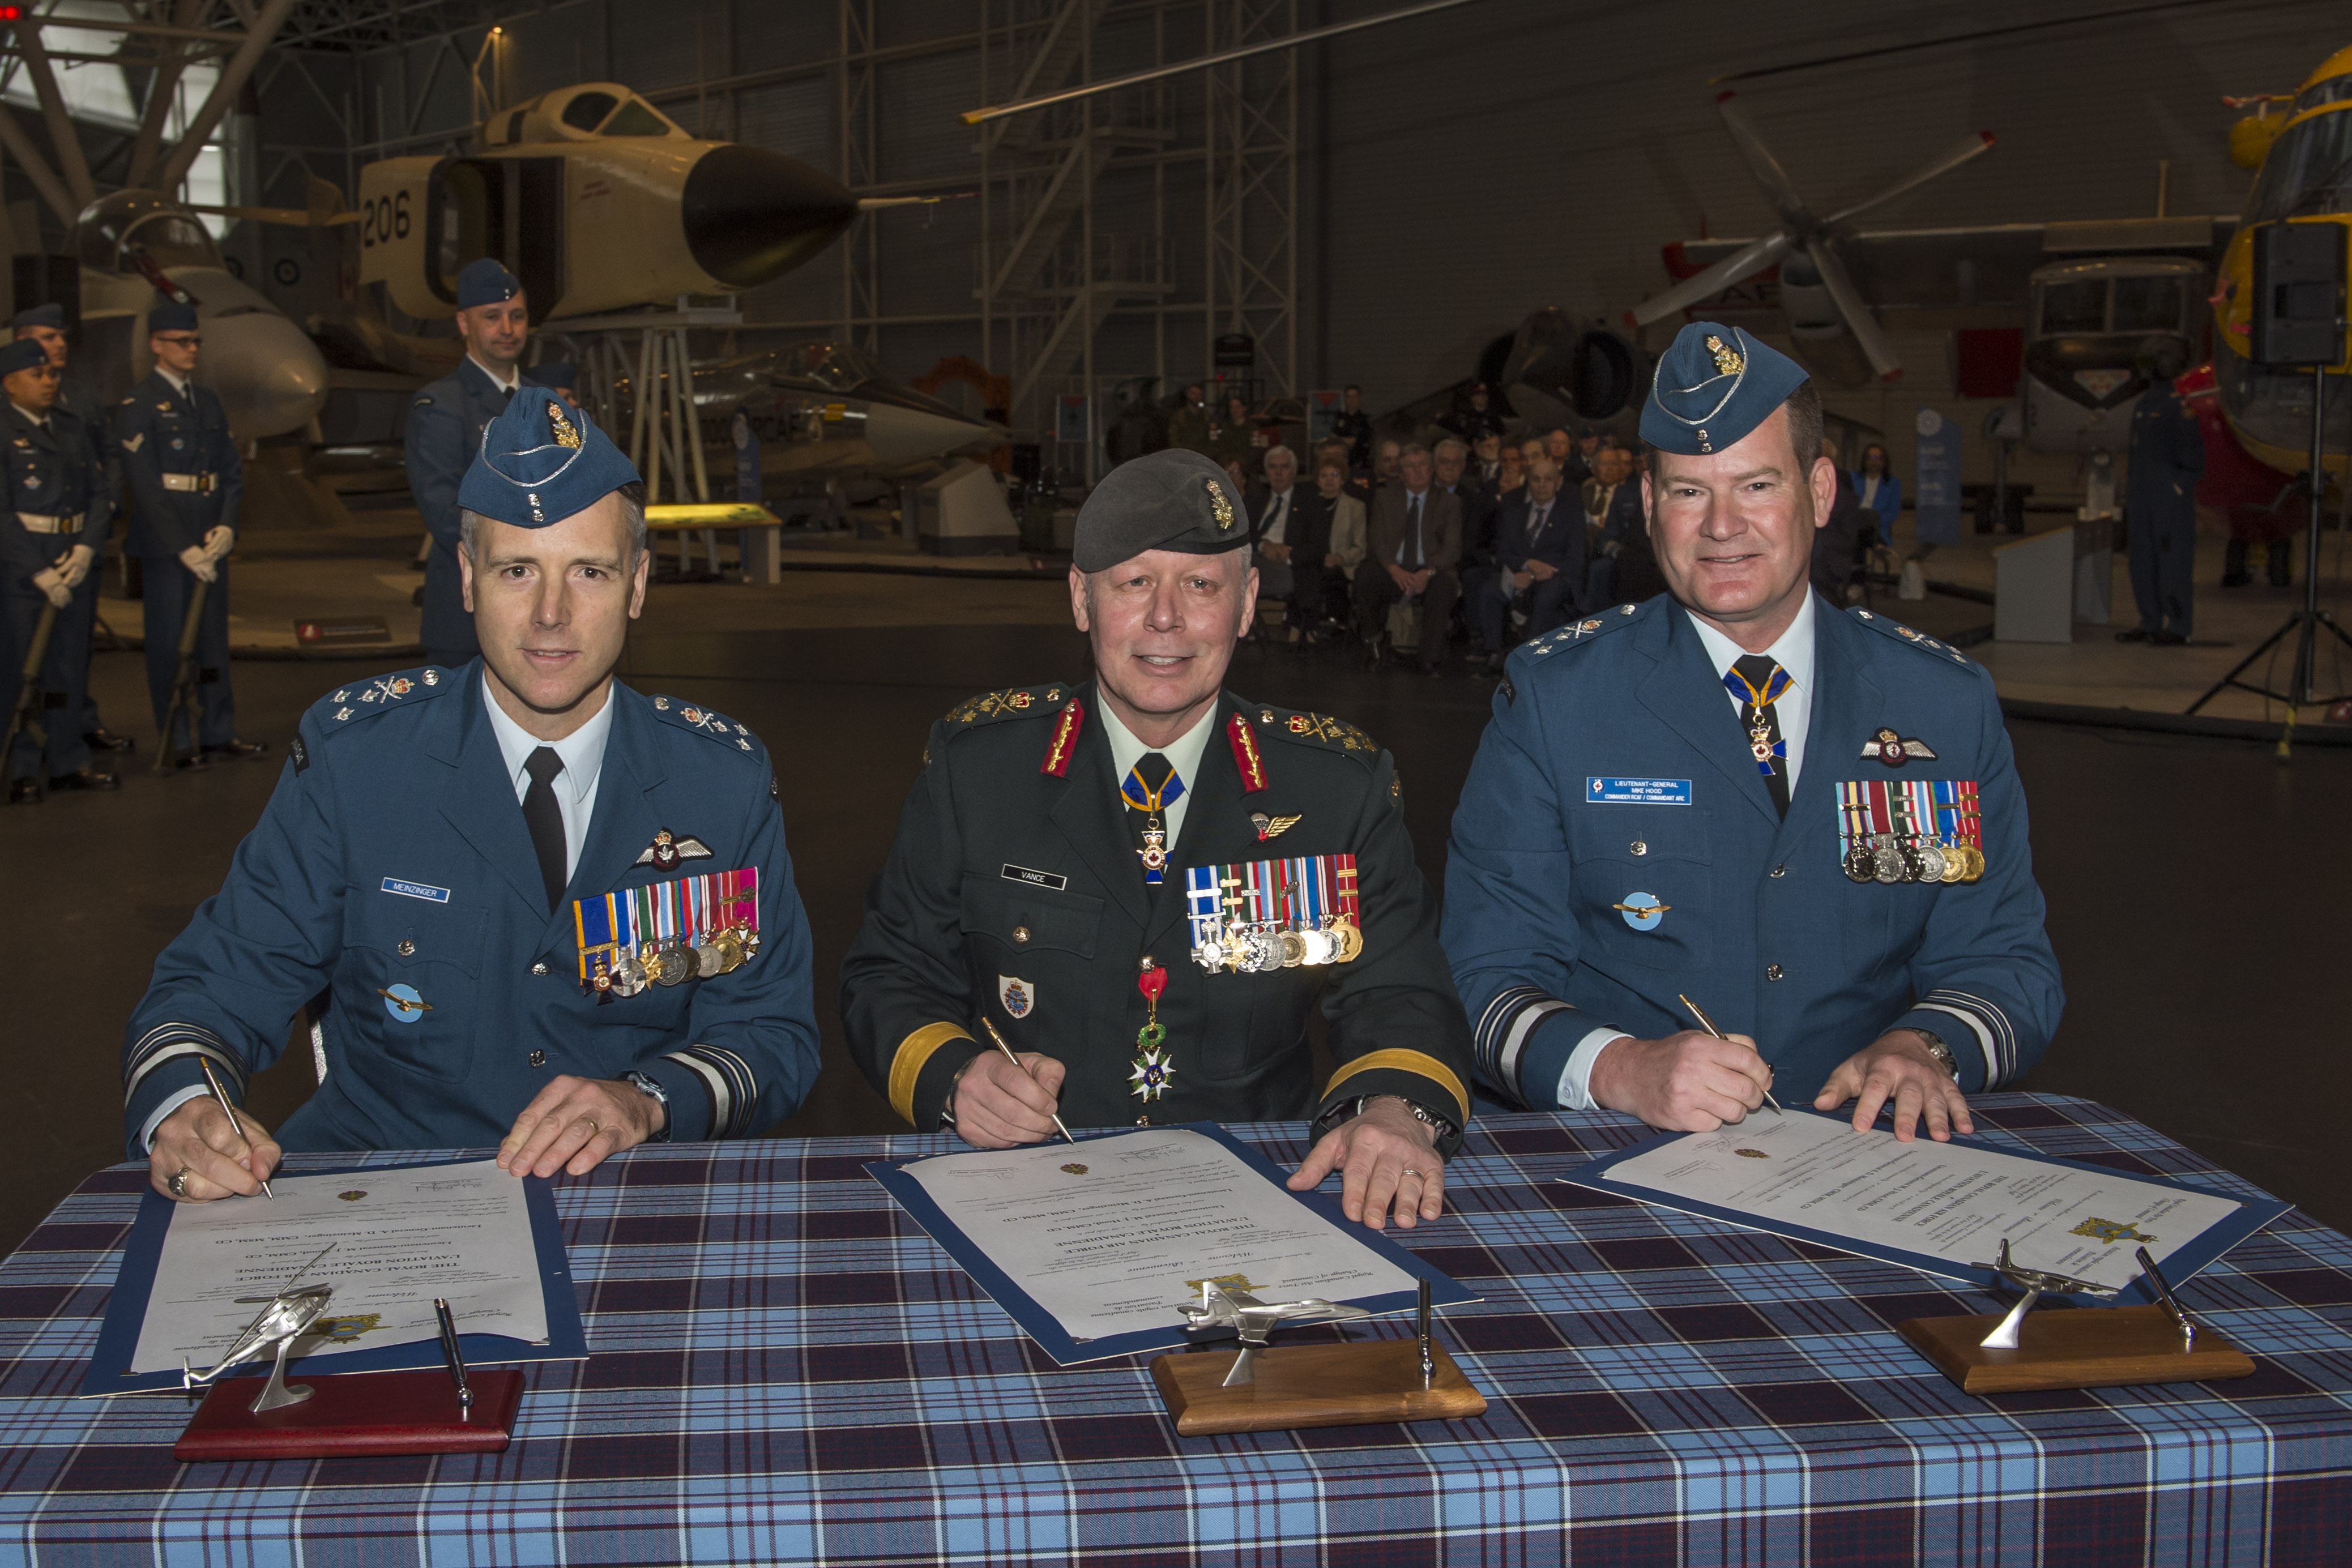 Three men in military uniforms sit behind a tartan-covered table, with documents resting on the table.